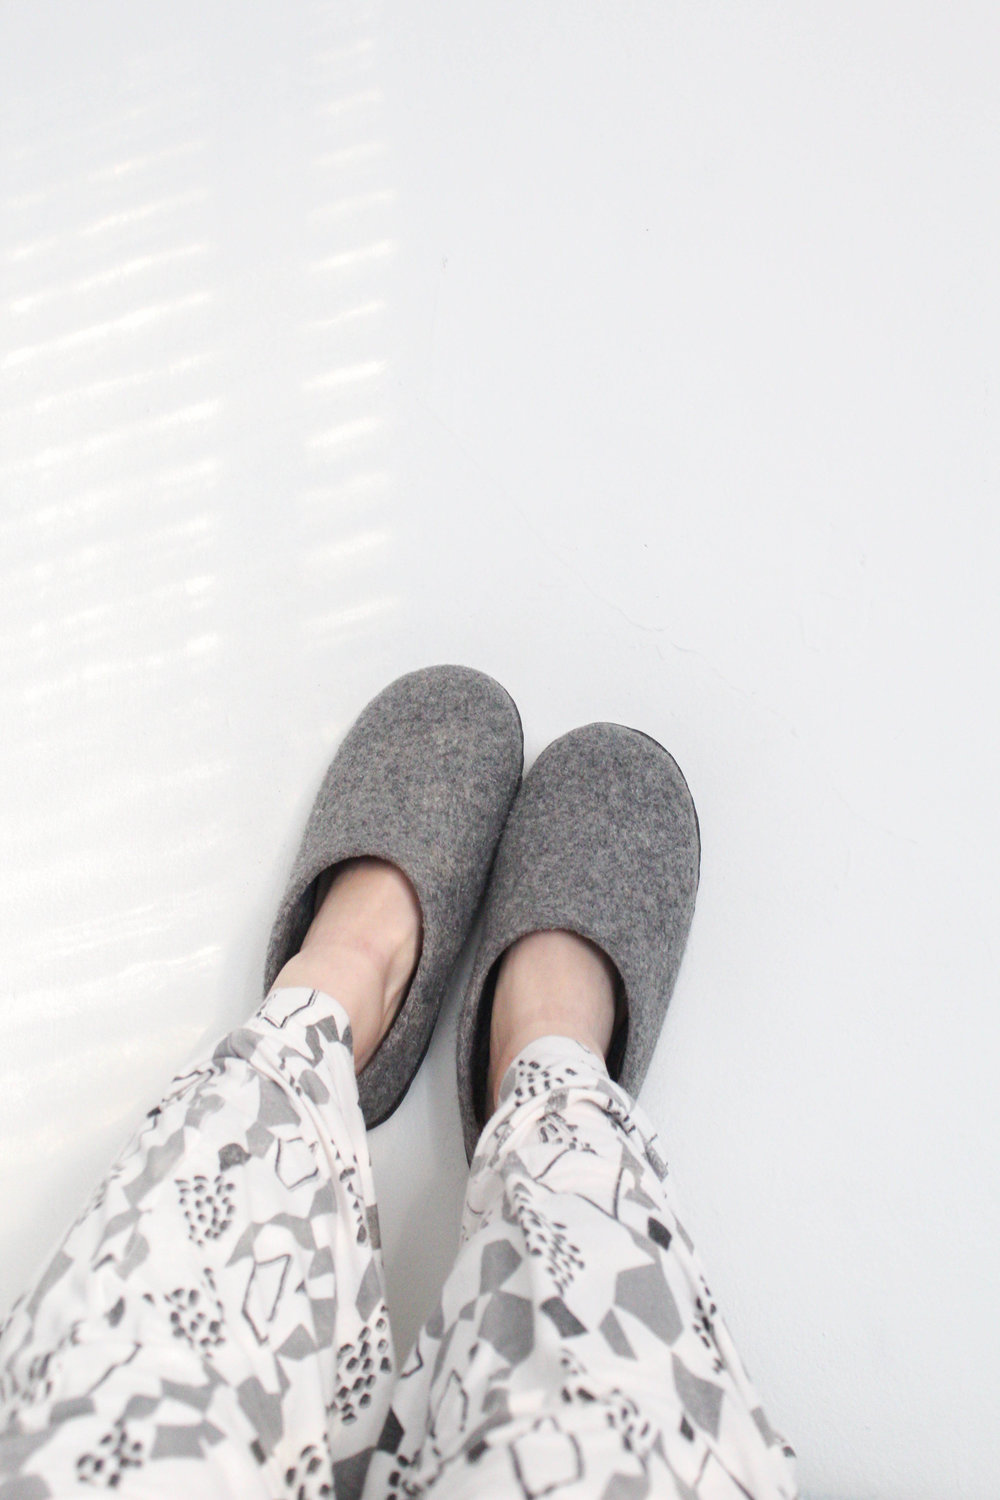 Wool Slippers Creating Employment Opportunities